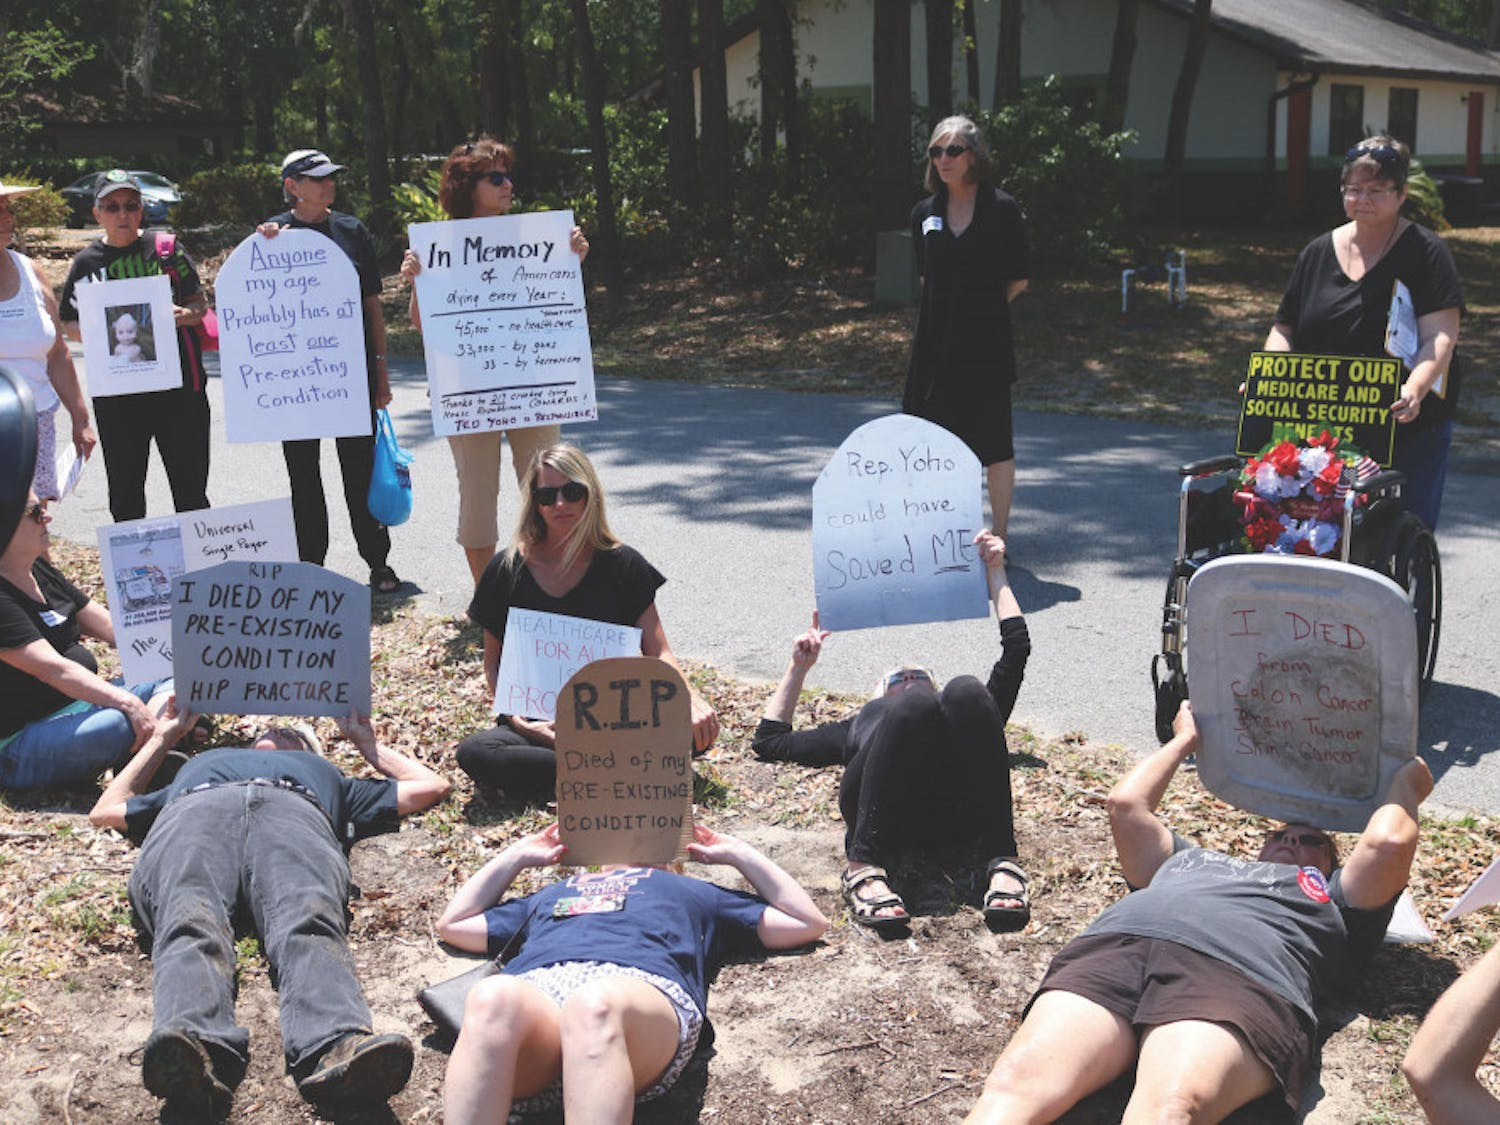 As a way of protesting the American Health Care Act, a group of about 30 local activists staged a die-in at congressman Ted Yoho's office in Gainesville Tuesday.